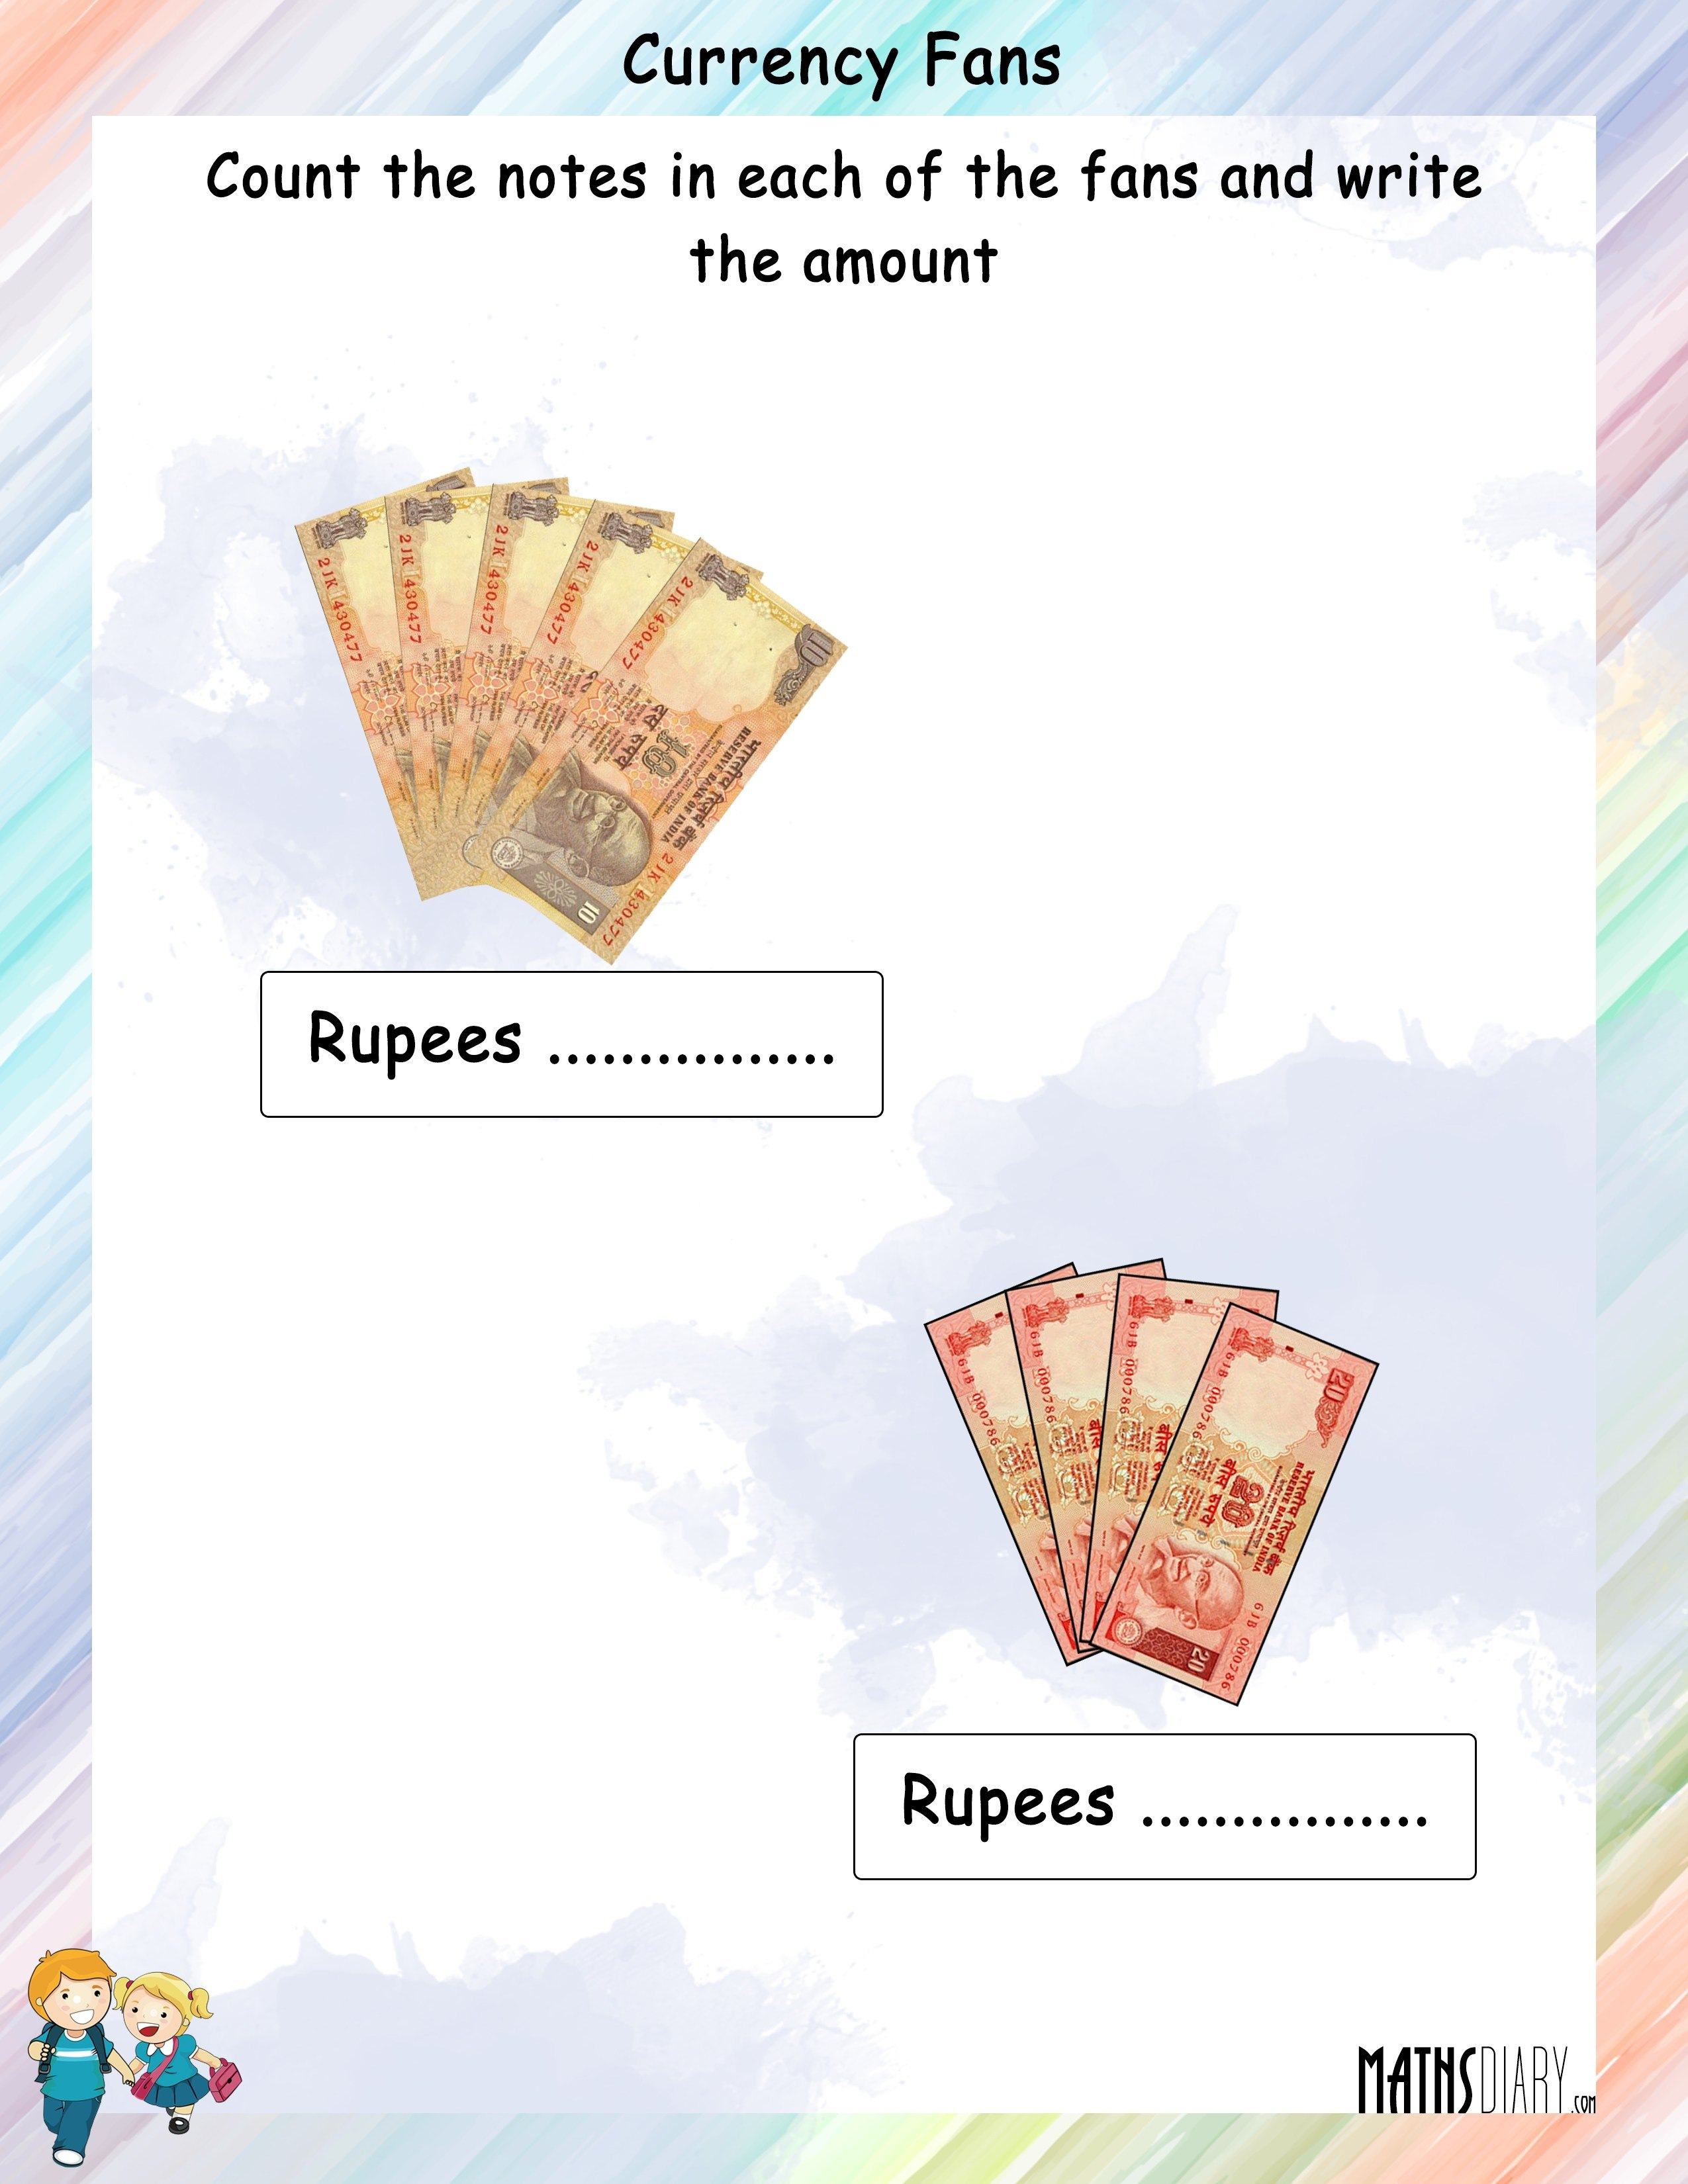 Count The Currency Notes